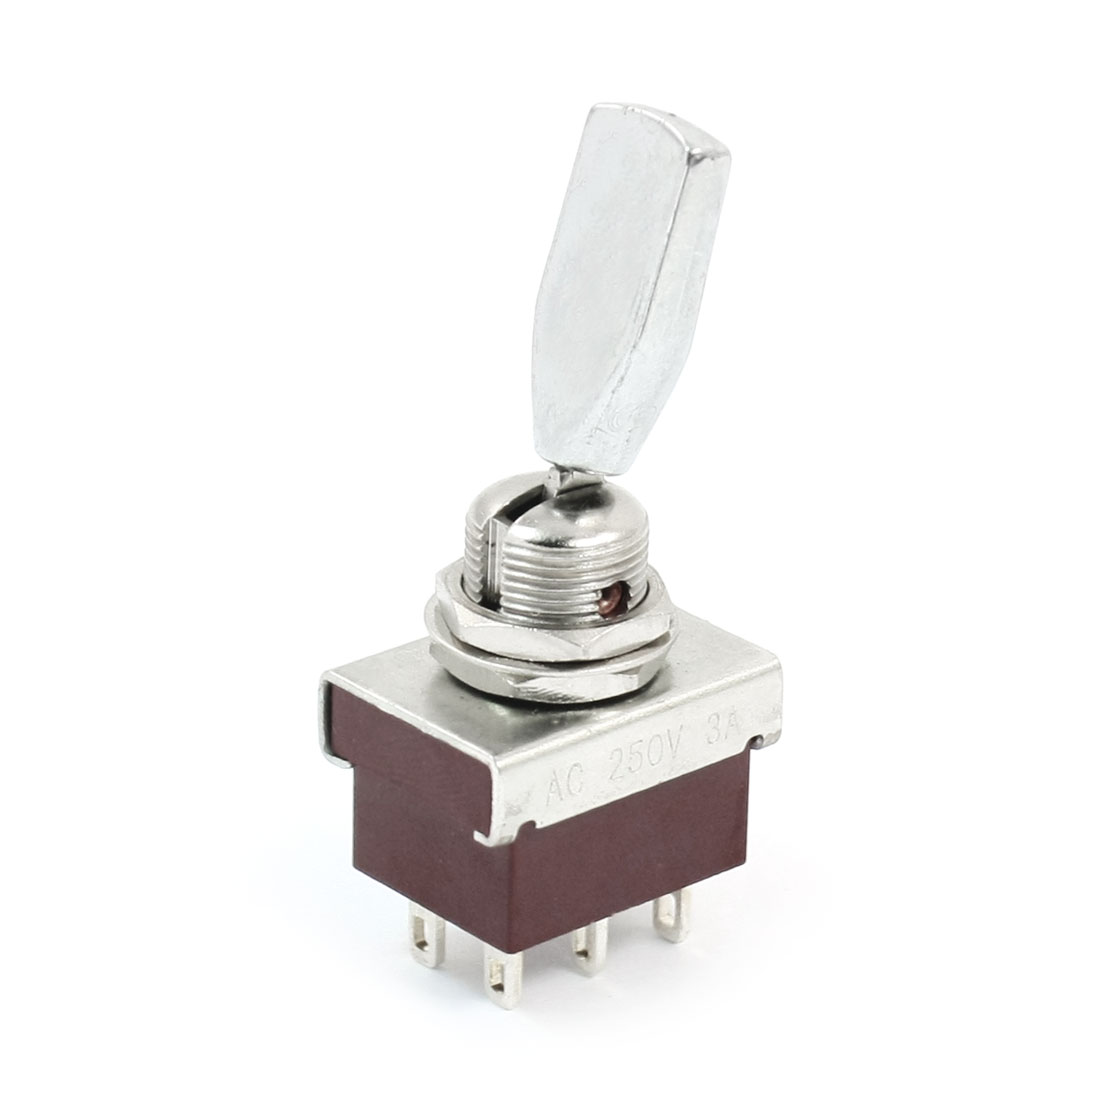 KN3-202 12mm Mount Dia DPDT 6-Terminals Toggle Switch AC250V 3A